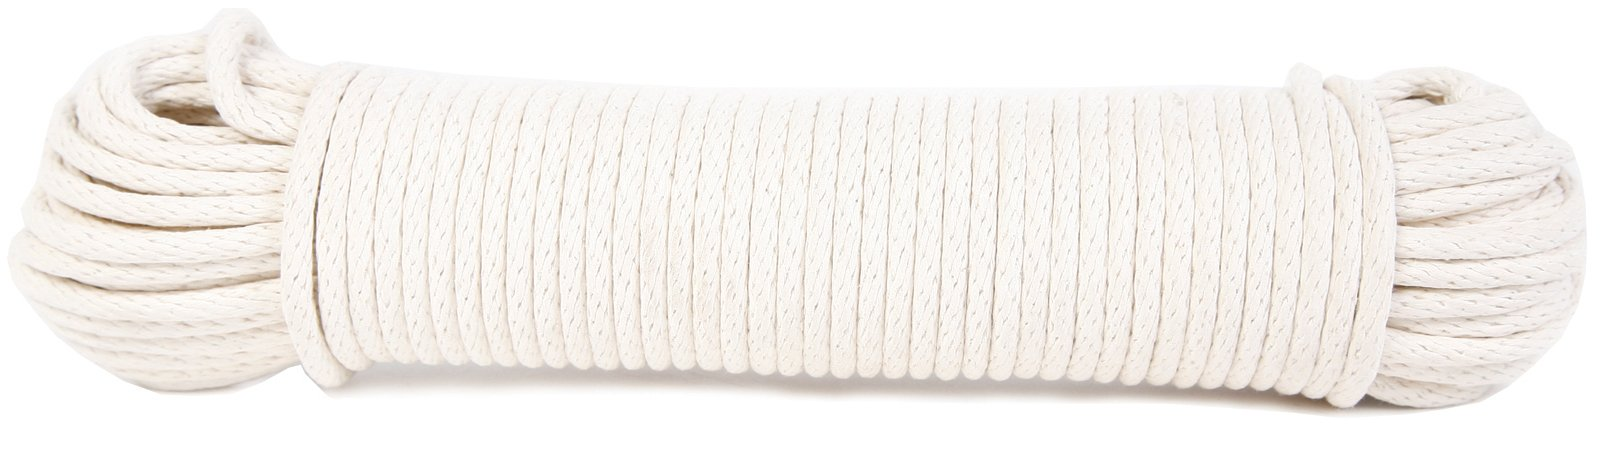 Koch 5600825 Braided Cotton/Poly Sash Cord, Trade Size 8 by 100 Feet, White